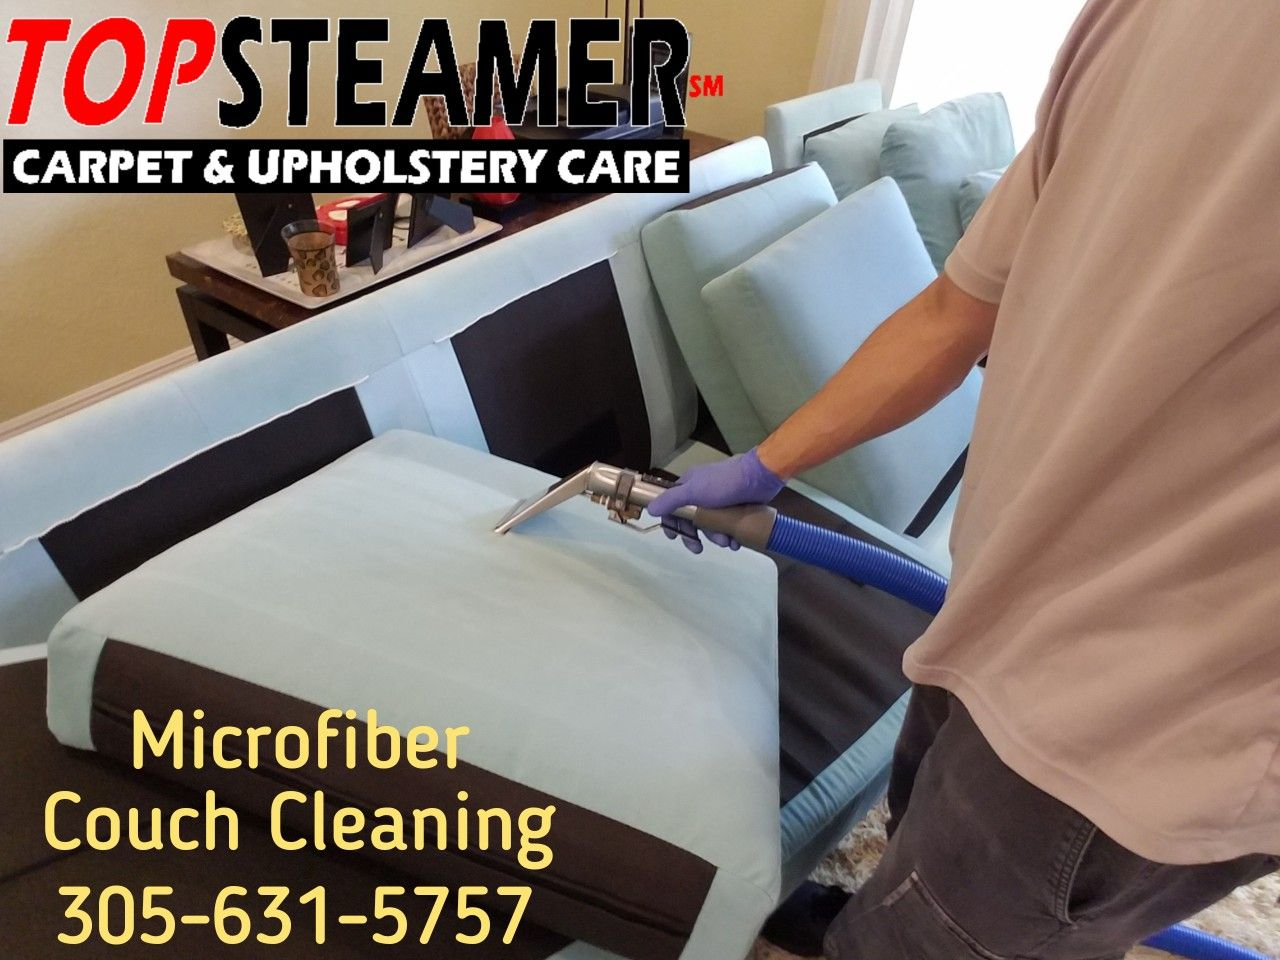 Microfiber sofa cleaning in Coral Gables 3056315757